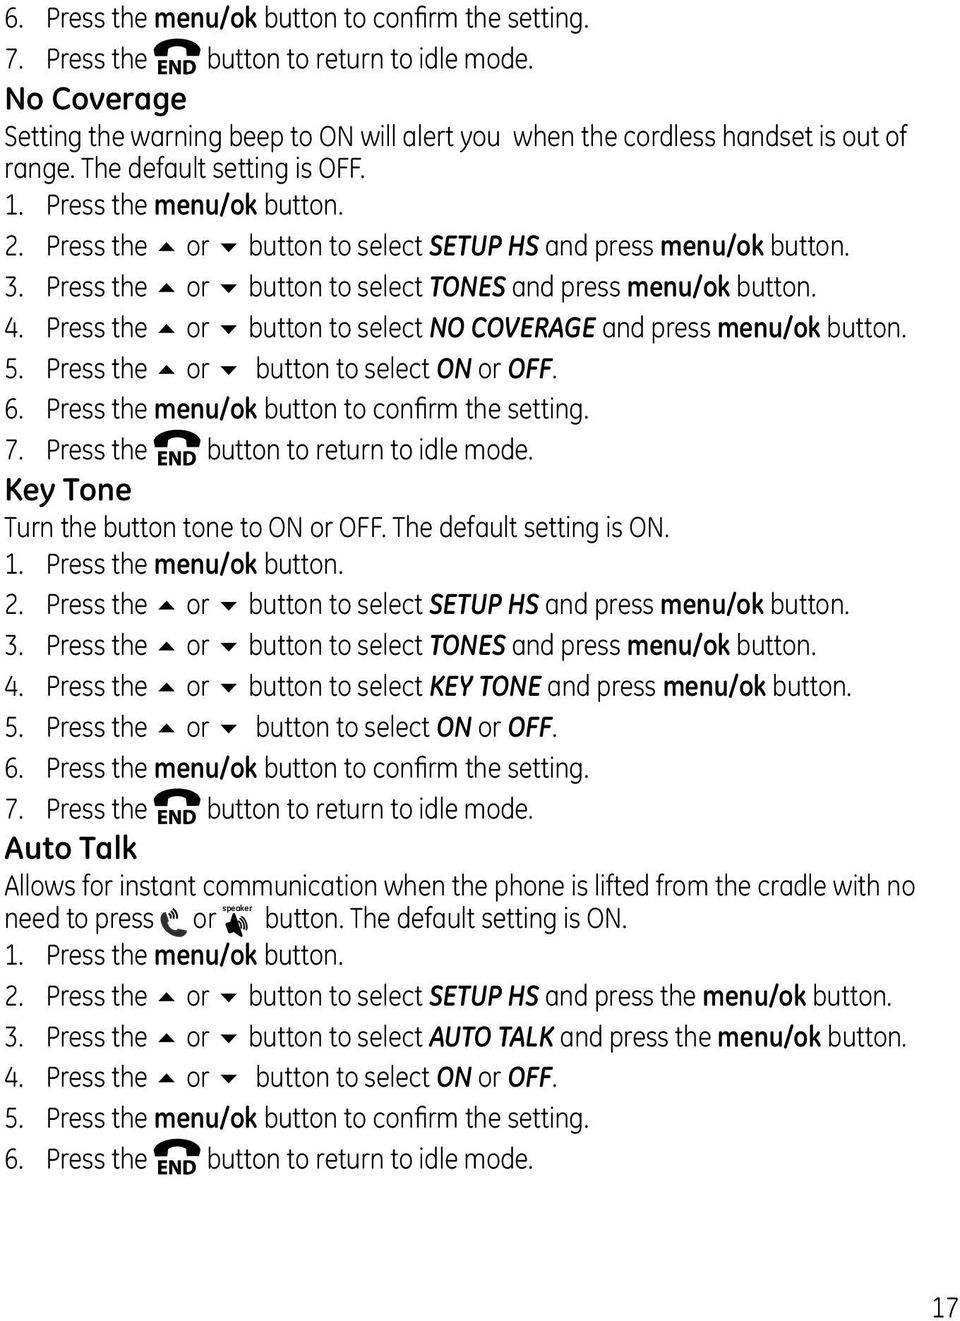 Press the 5 or 6 button to select NO COVERAGE and press menu/ok button. 5. Press the 5 or 6 button to select ON or OFF. 6. Press the menu/ok button to confirm the setting. 7.